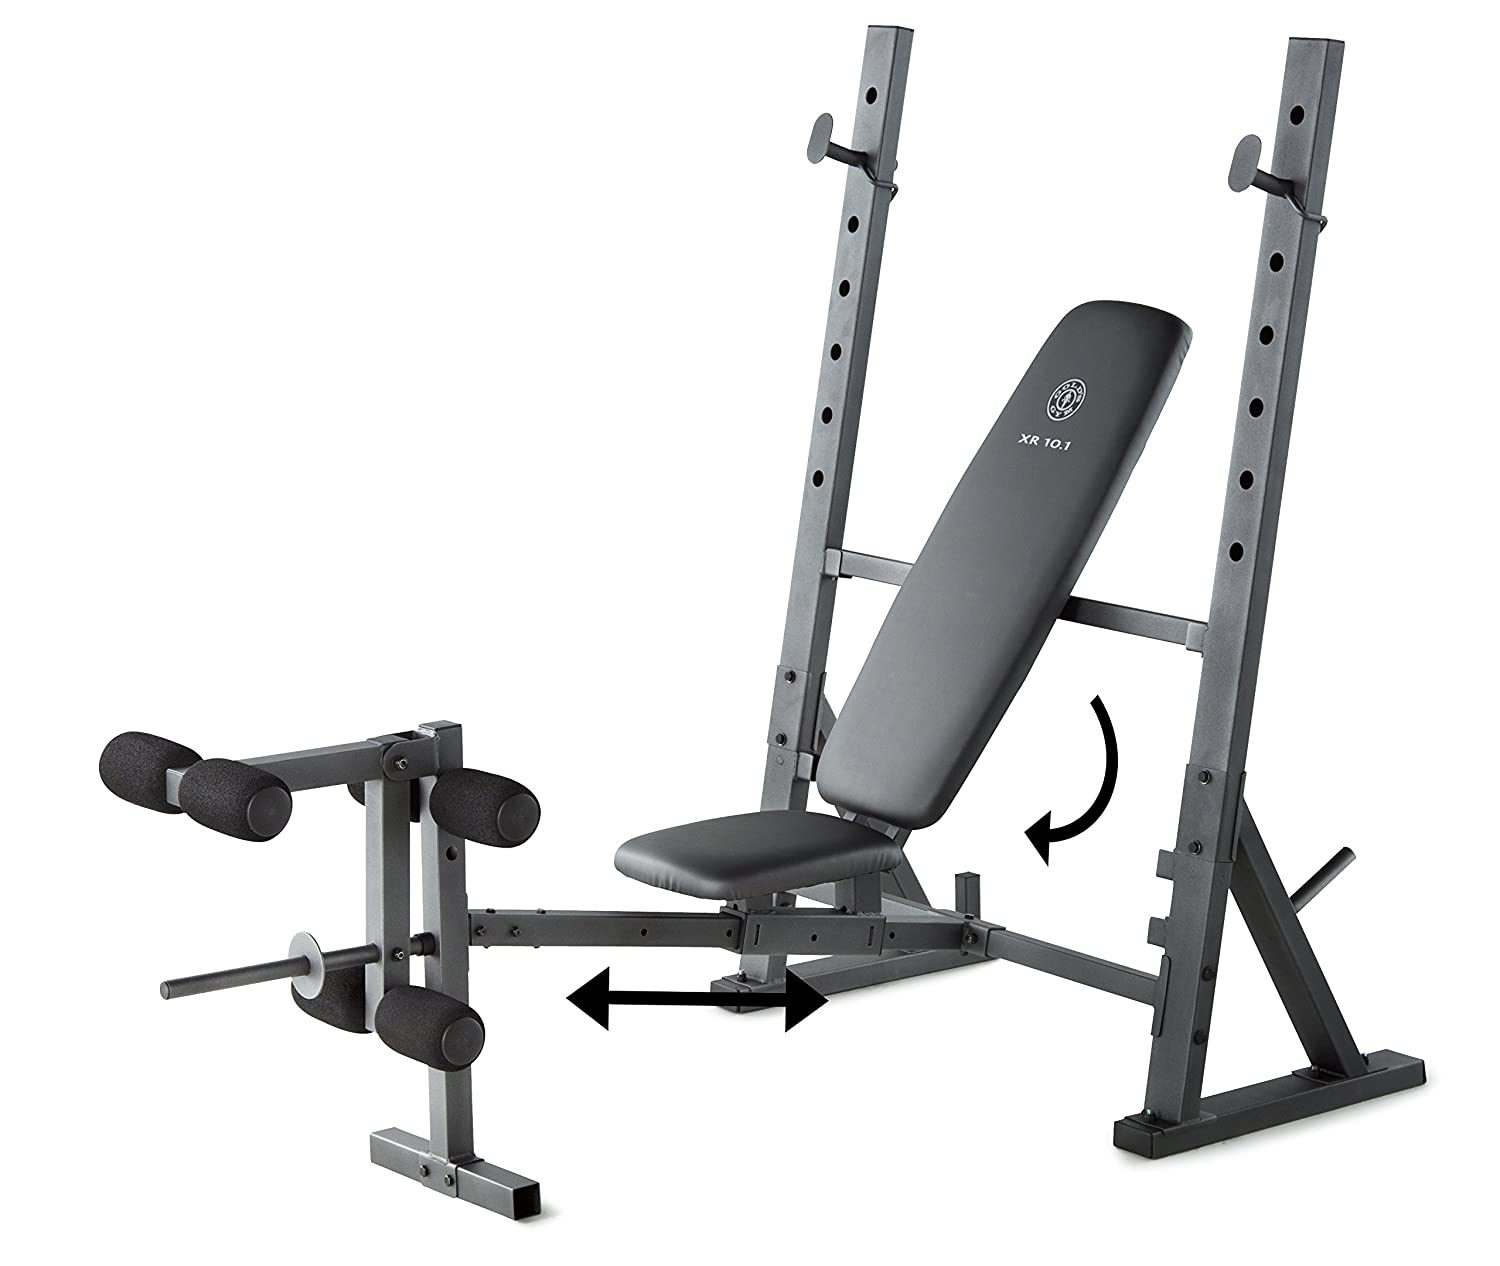 gym exercise weight bench singapore benches compact foldable home